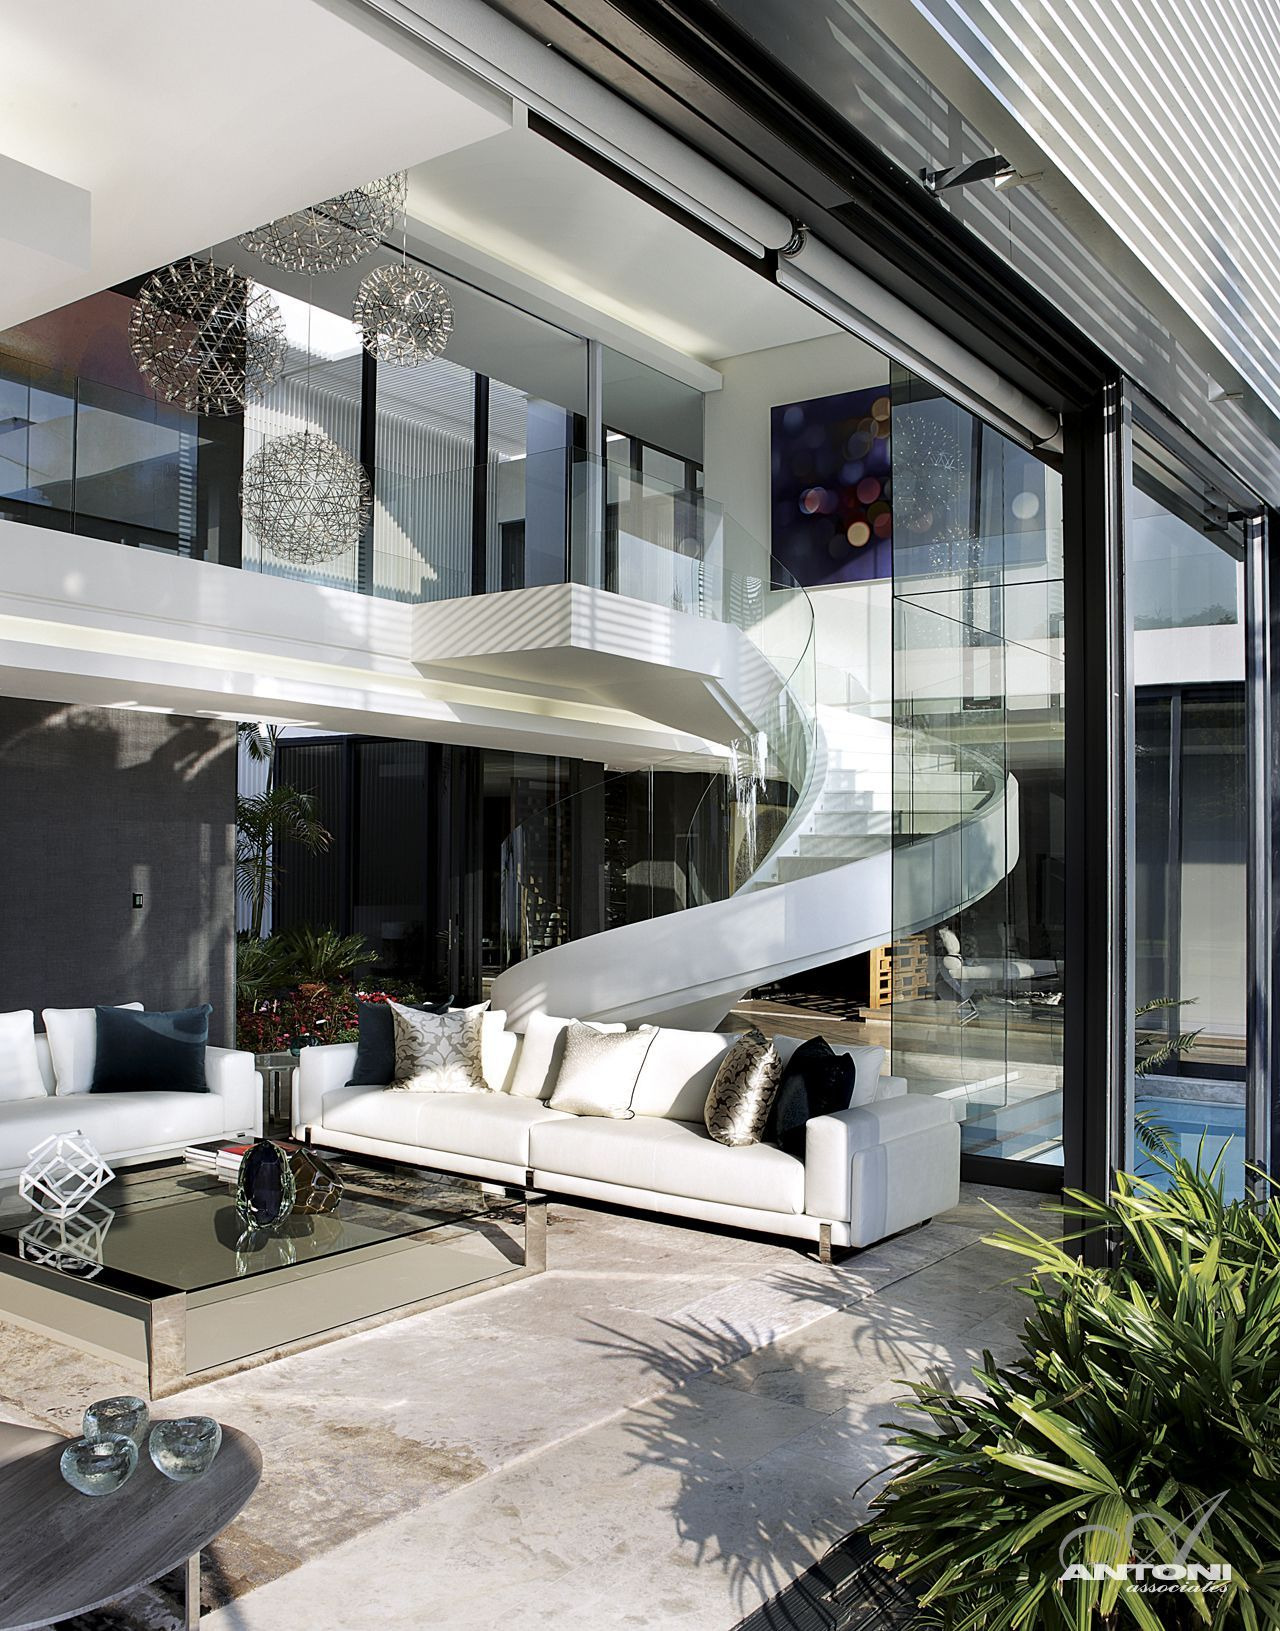 Modern Mansion With Perfect Interiors by SAOTA featured on architecture beast 07